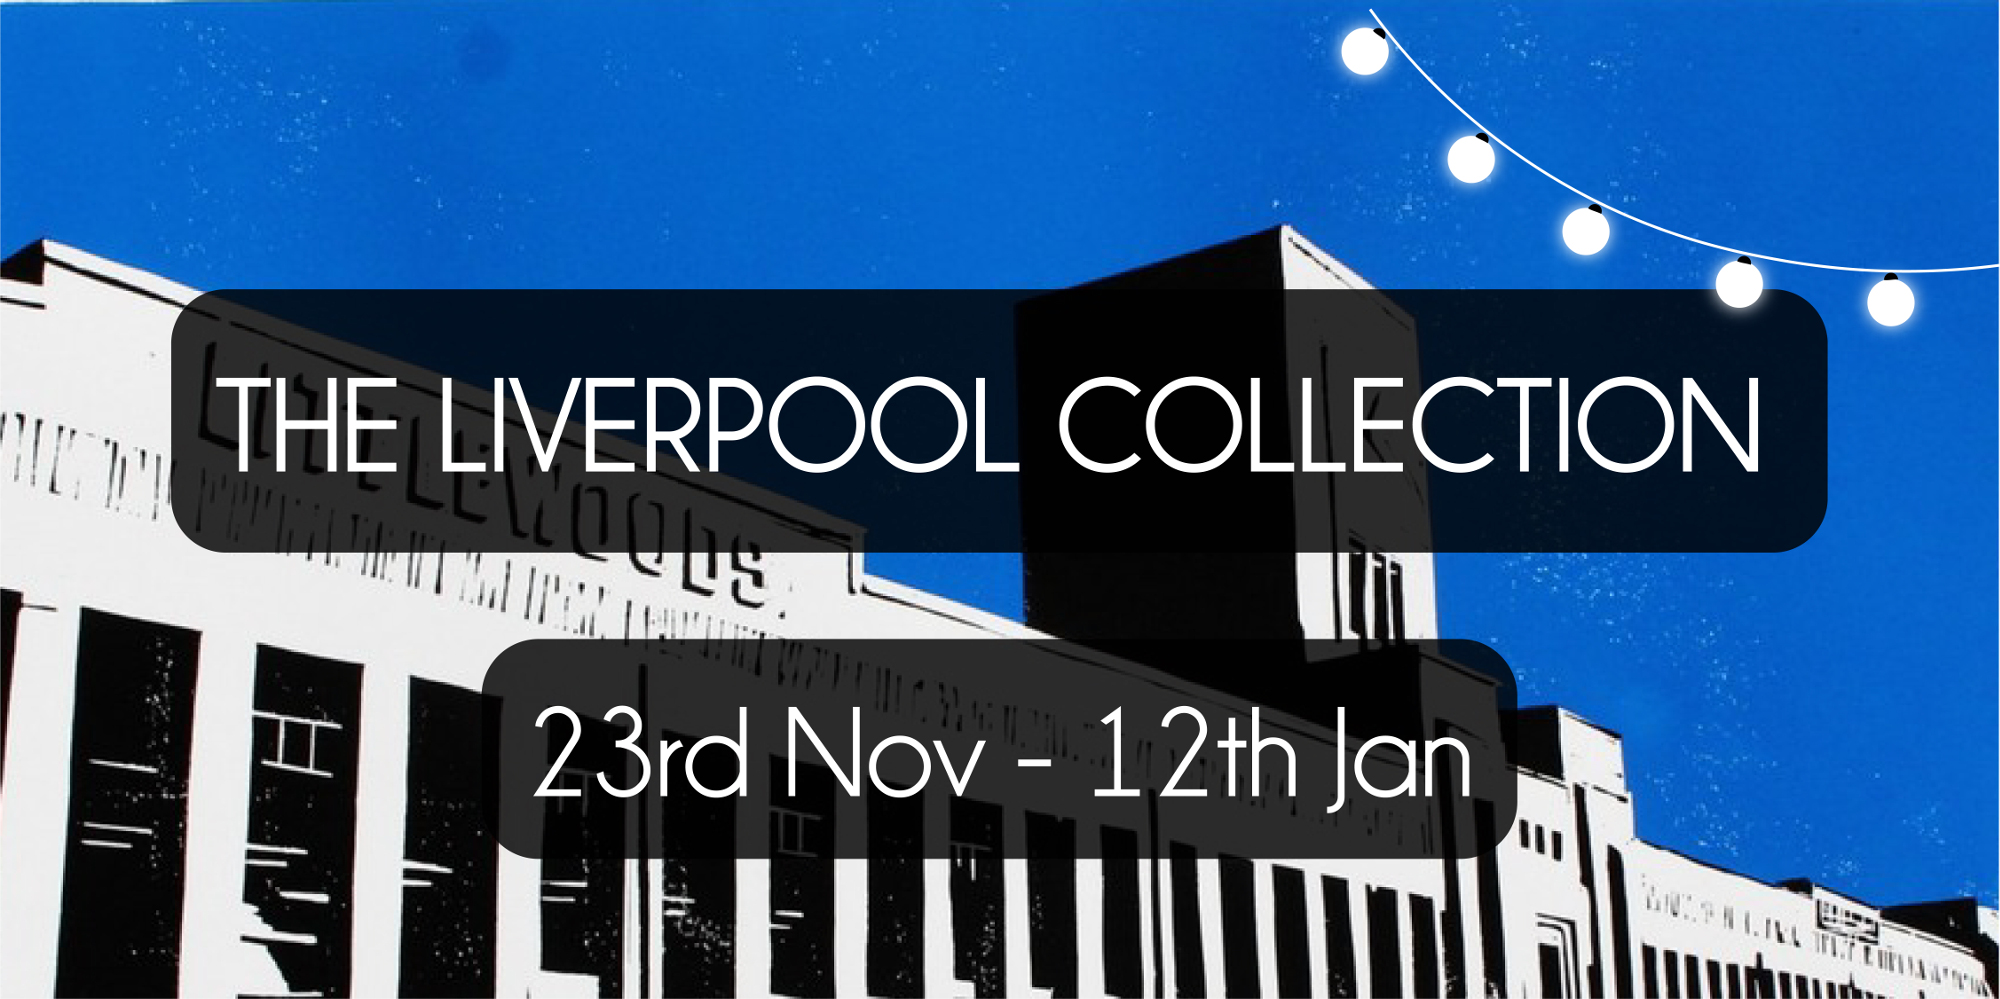 The Liverpool Collection Exhibition at dot-art Gallery